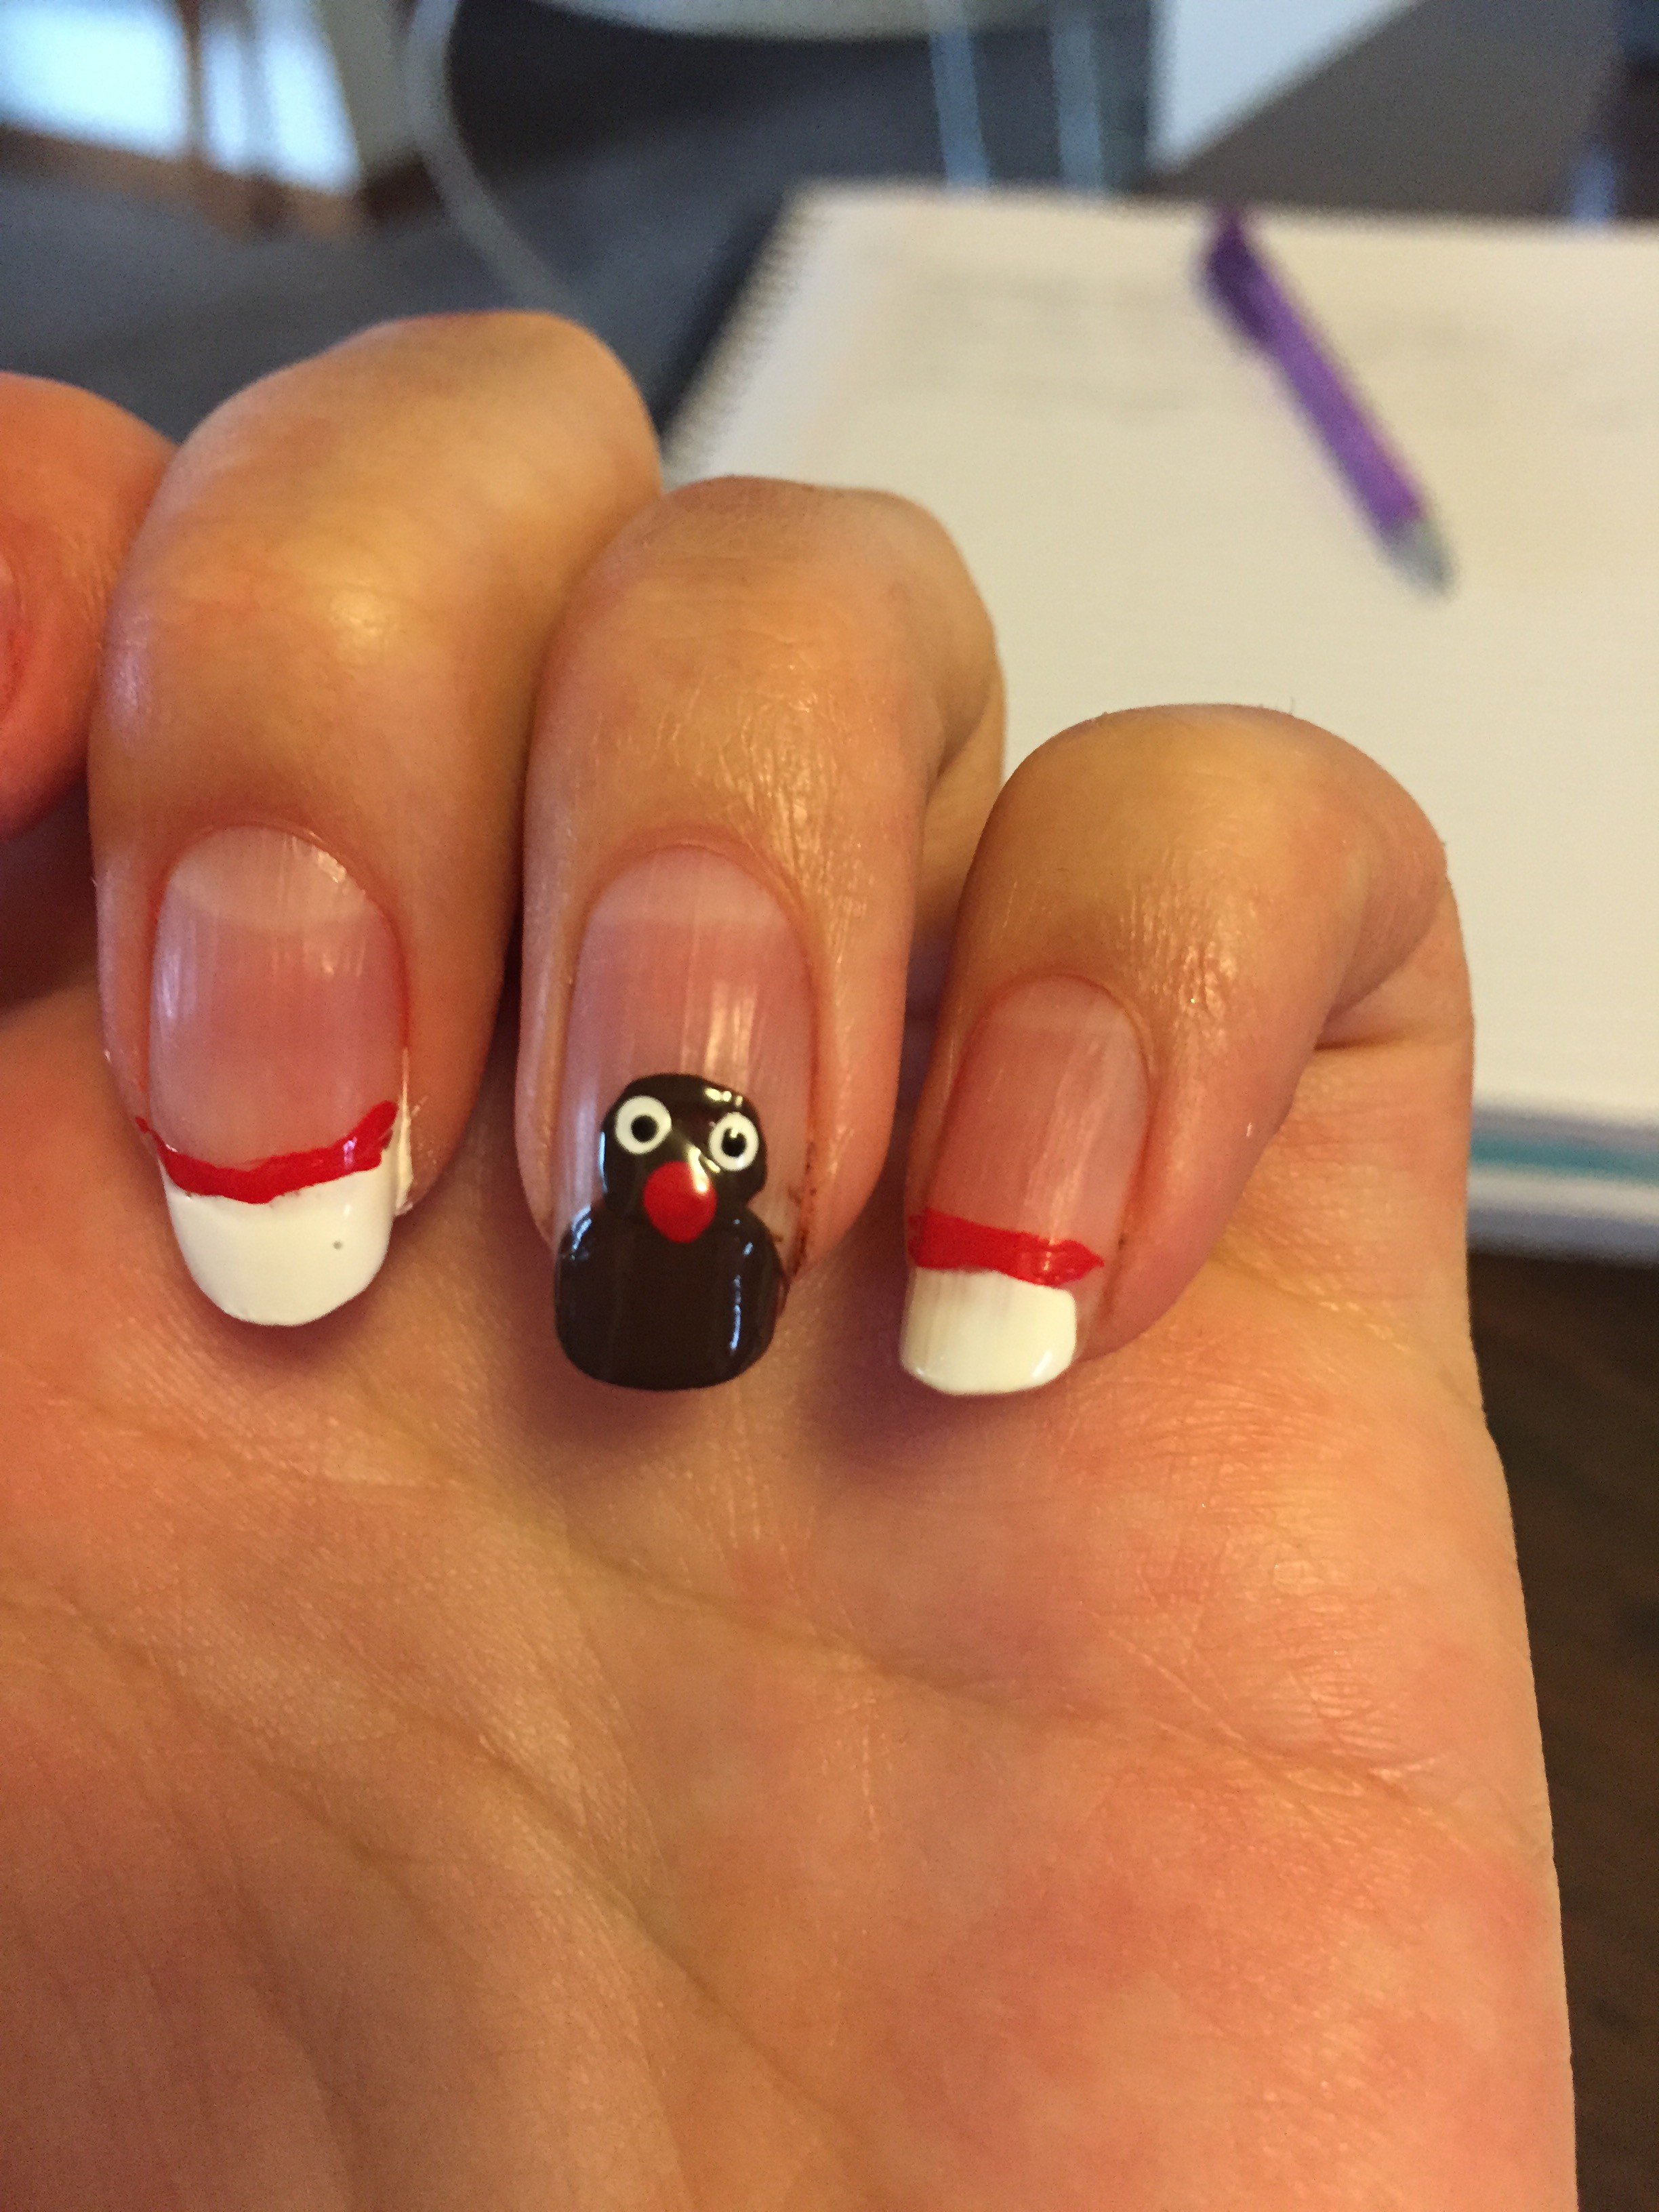 3 Simple Holiday Nail Art Designs | Unbelievab.ly